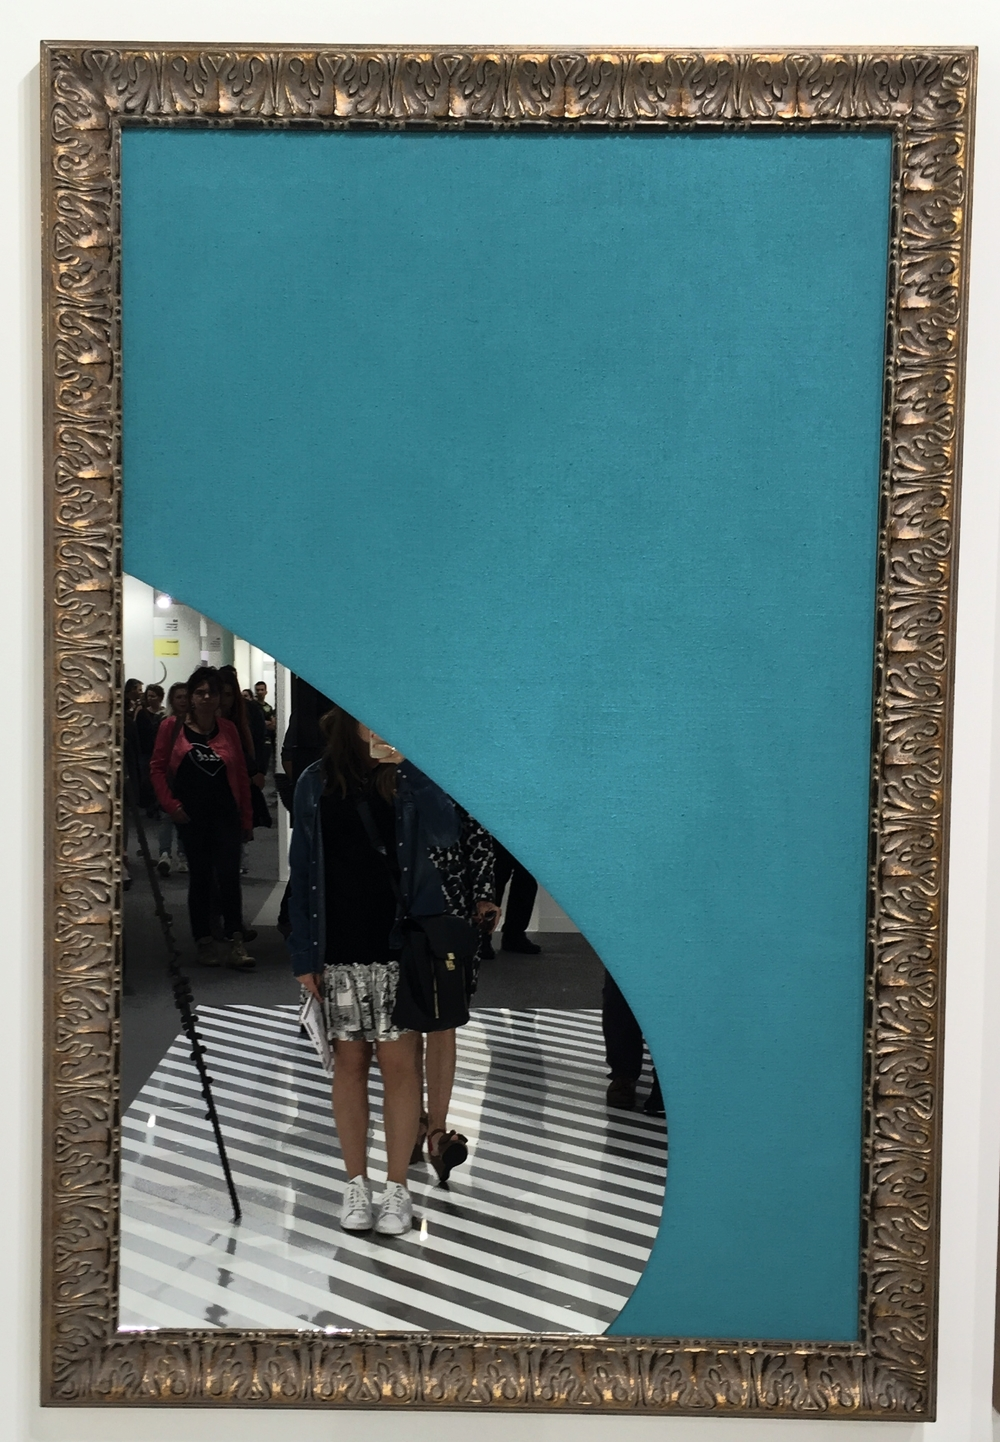 Michelangelo Pistoletto | Color and light, 2014